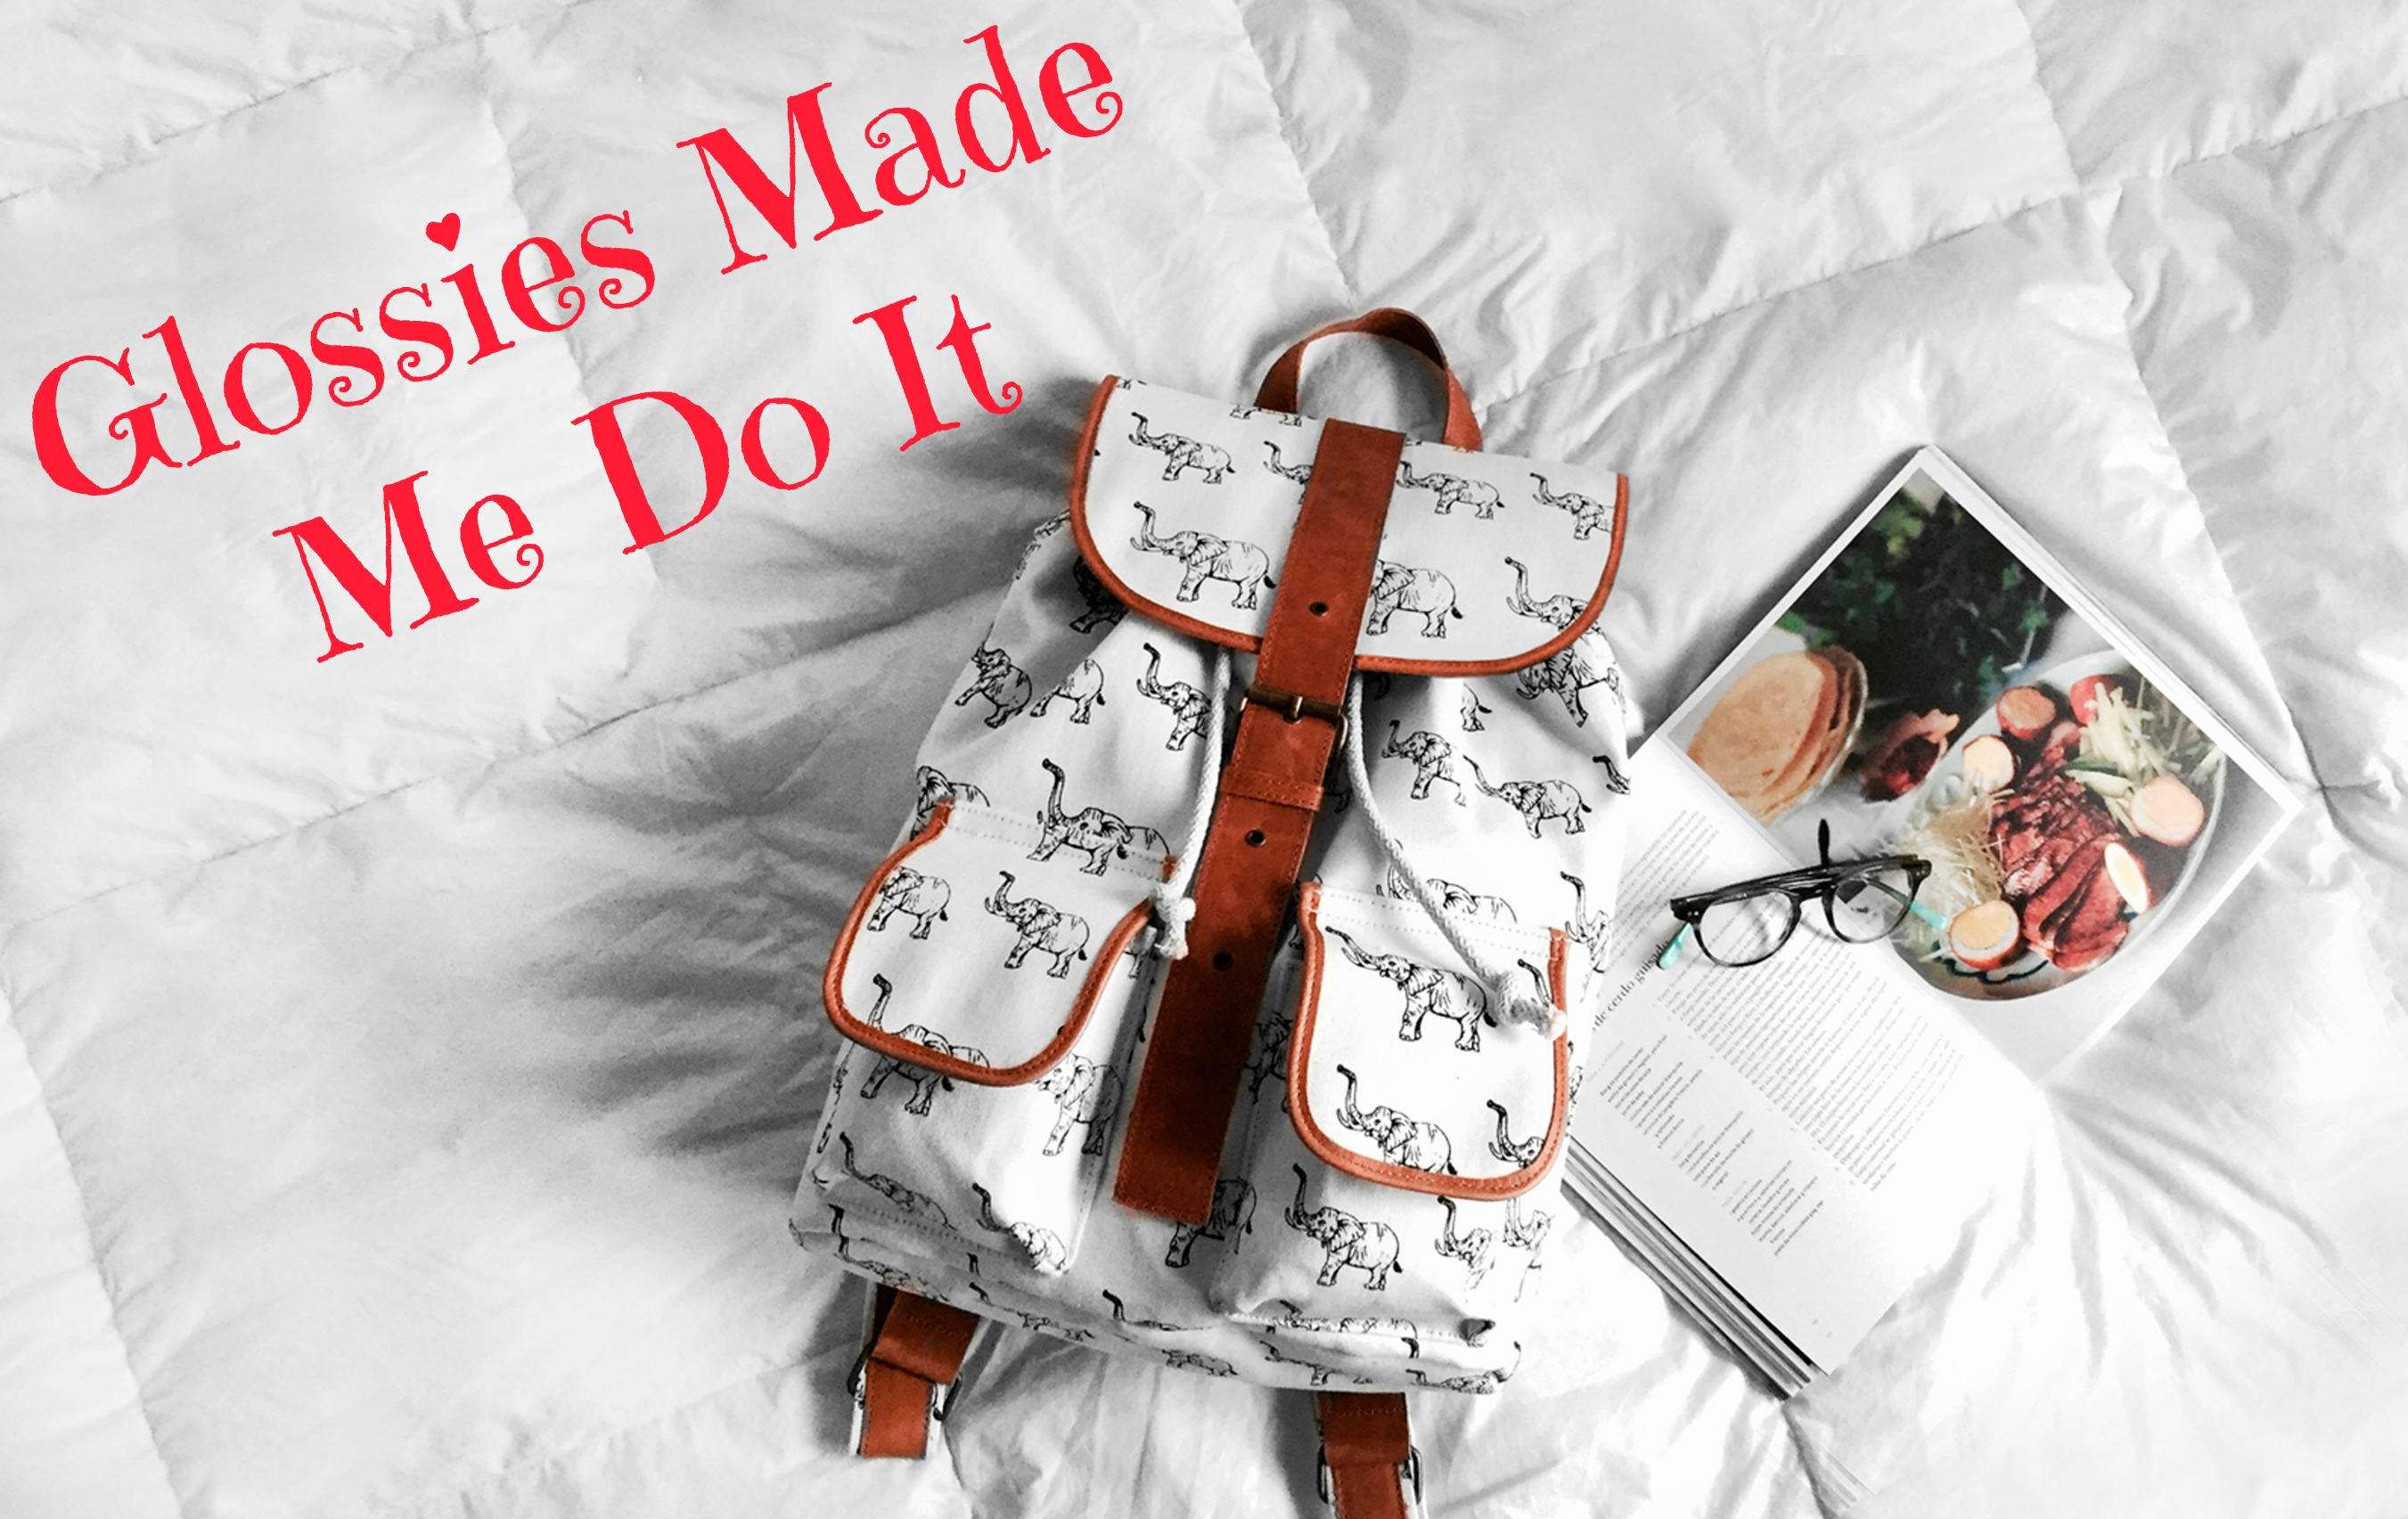 Glossies Made Me Do It, a monthly series I am co-hosting withLauren of Shooting Stars Mag!We are sharing our favorite magazines and what we learned from them. Books, beauty, food, you name it – it's all fair game in our series.